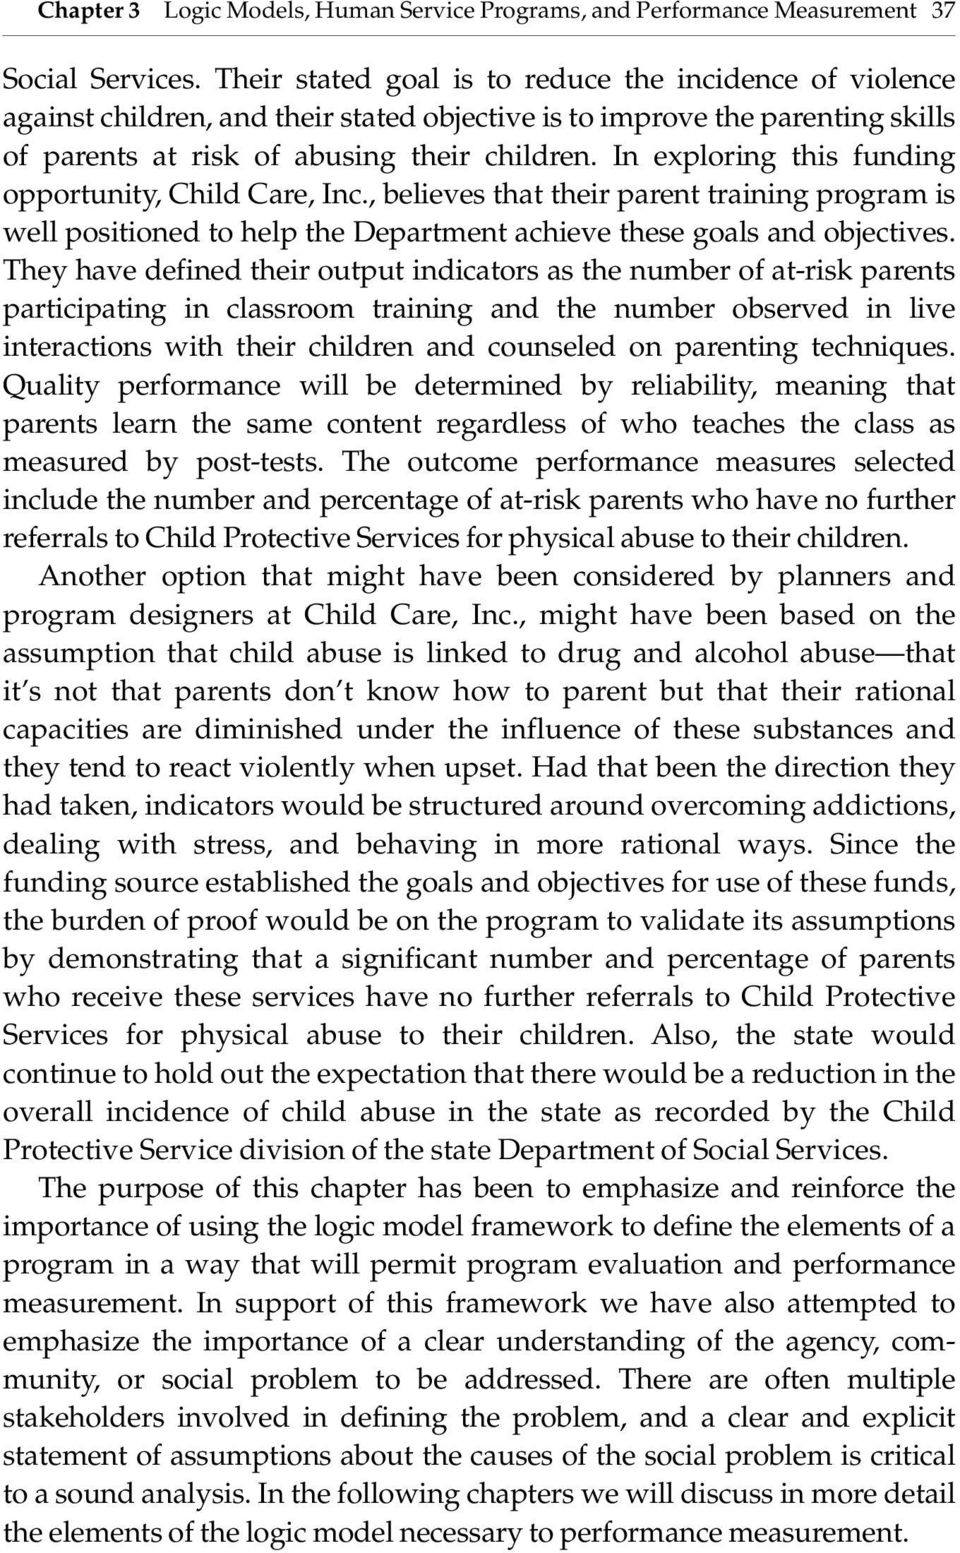 In exploring this funding opportunity, Child Care, Inc., believes that their parent training program is well positioned to help the Department achieve these goals and objectives.